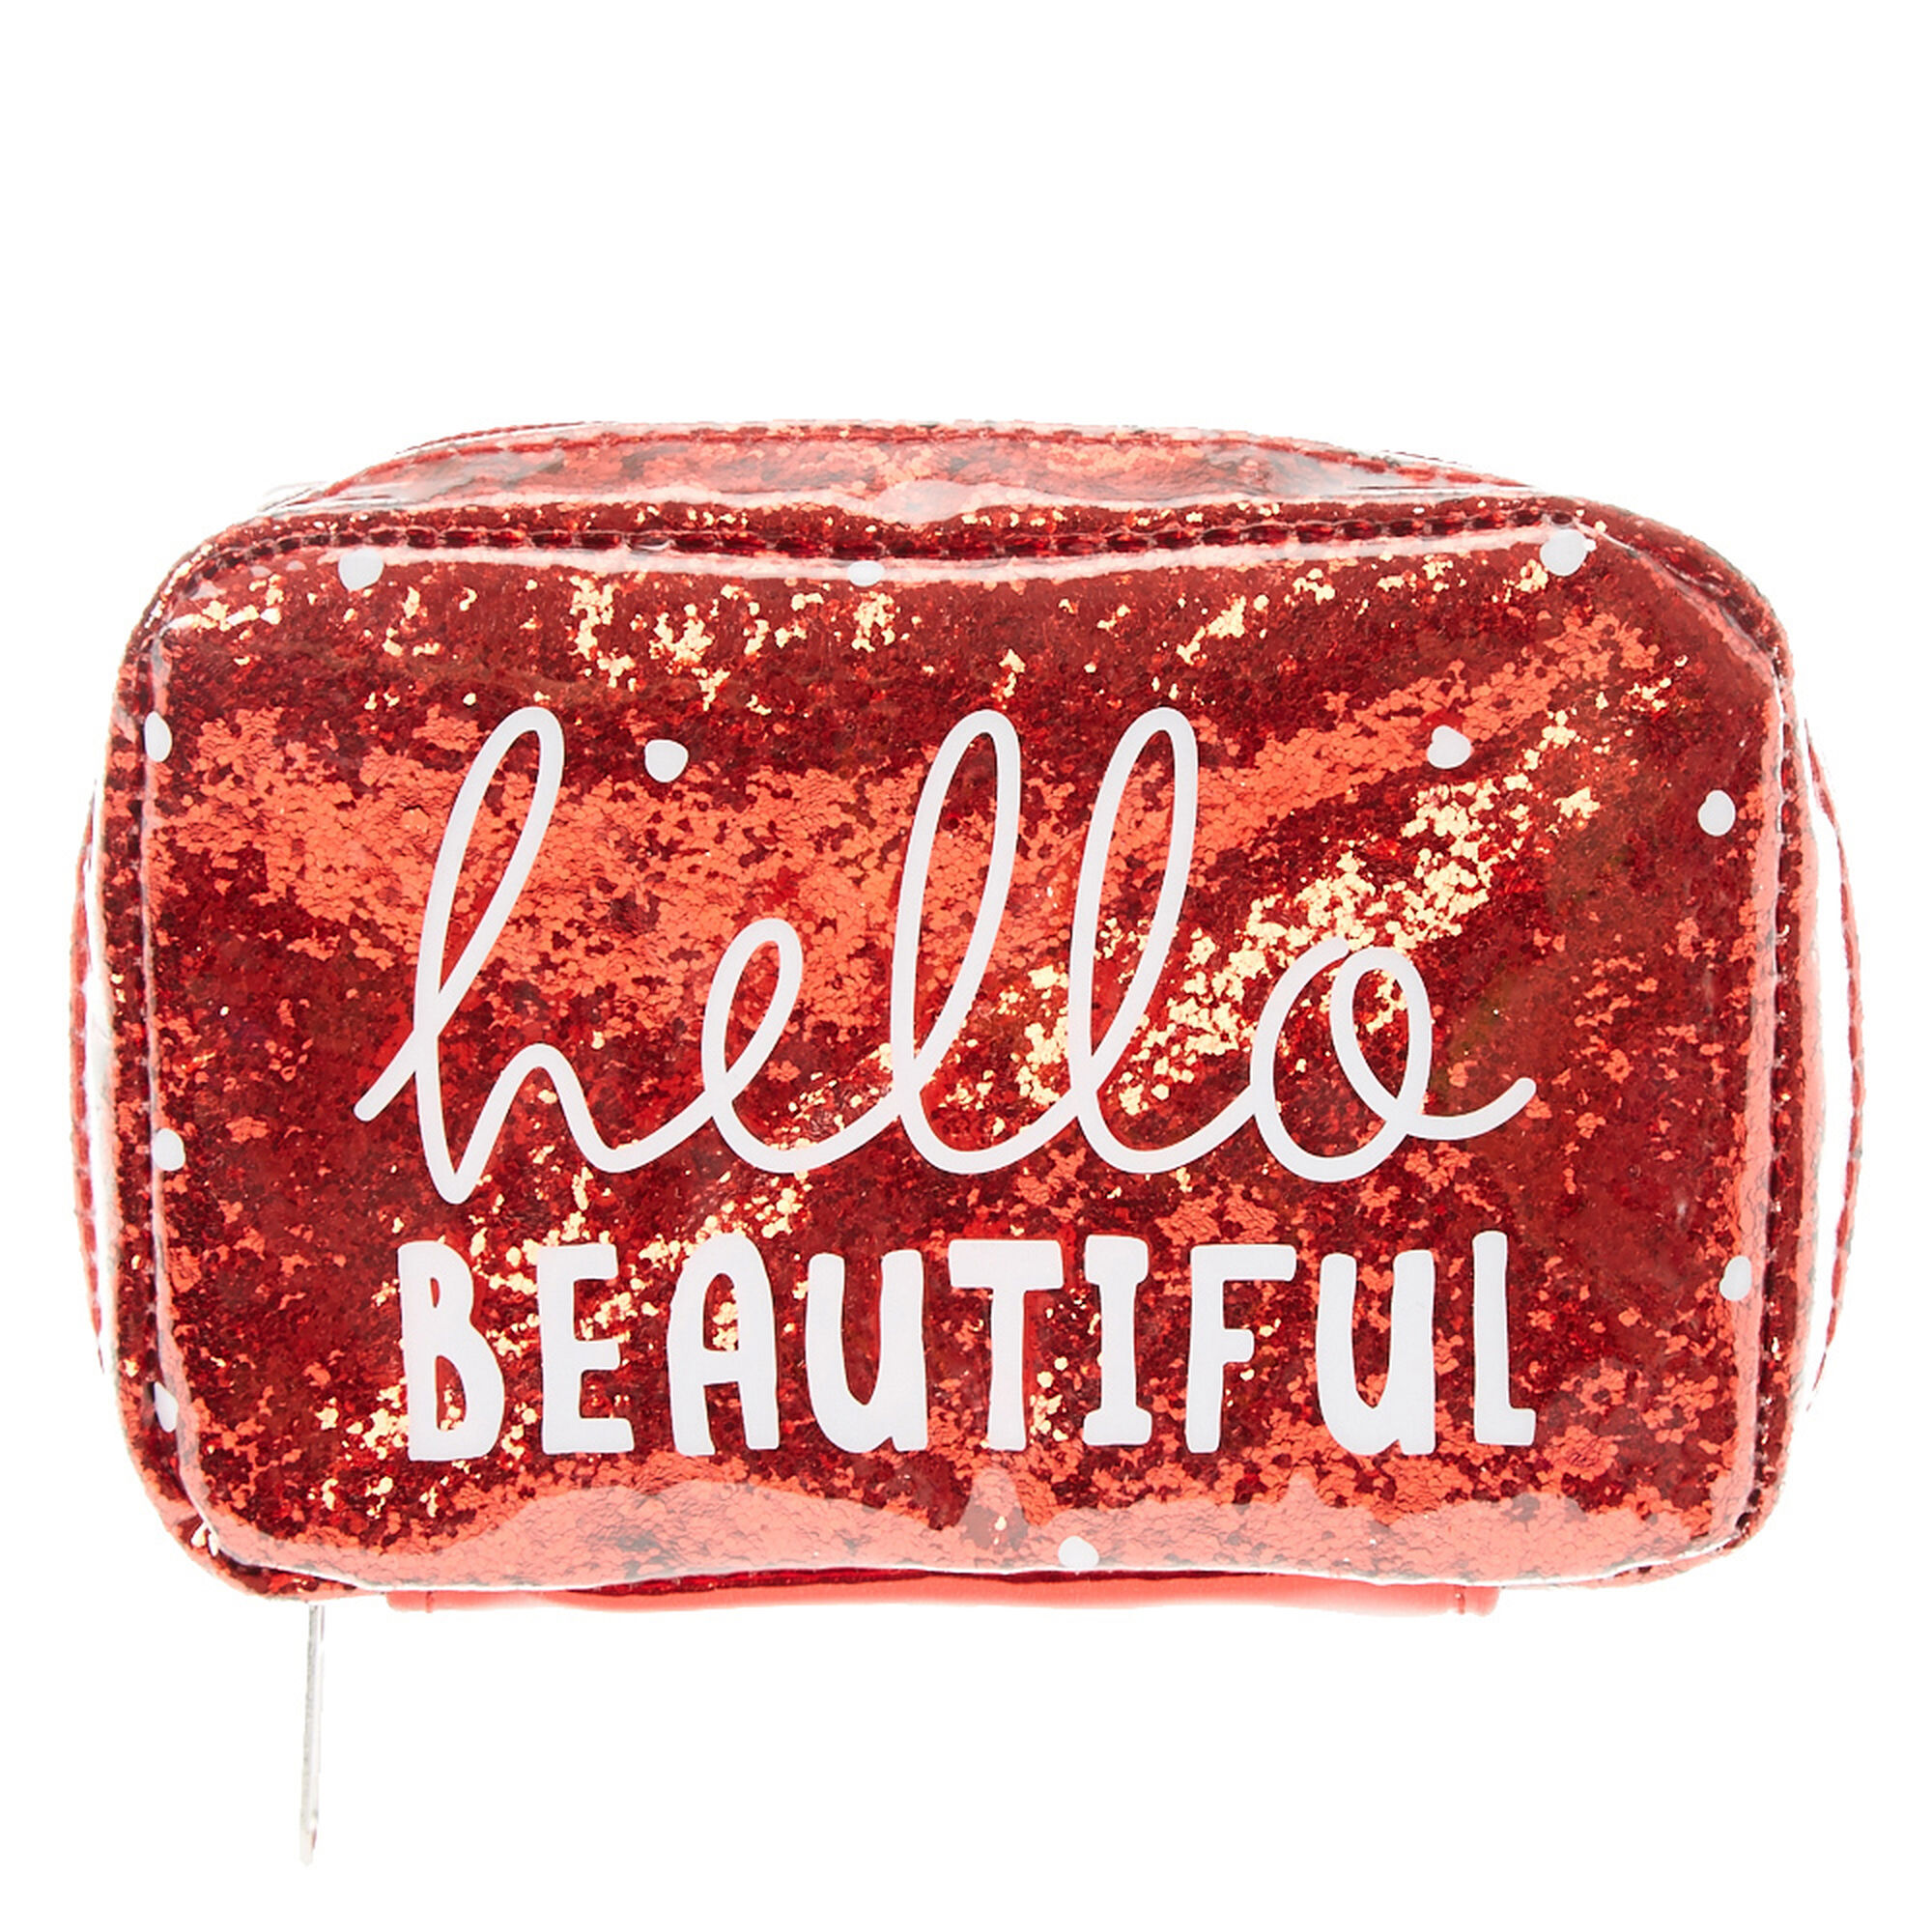 Hello Beautiful Red Glitter Cosmetic Bag | Claire's US